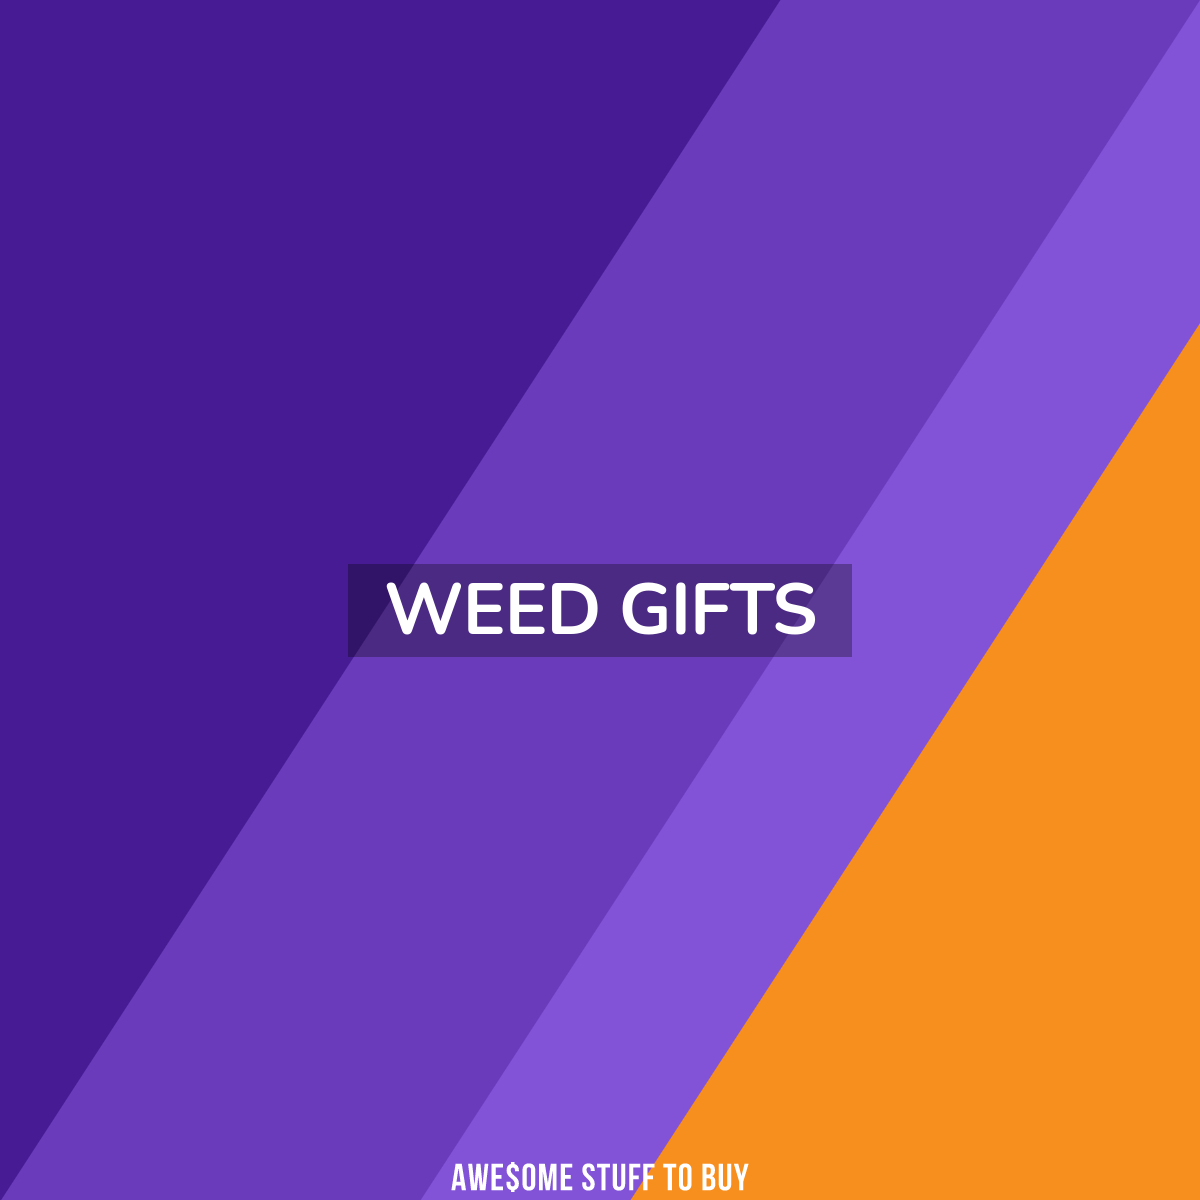 Weed Gifts // Awesome Stuff to Buy